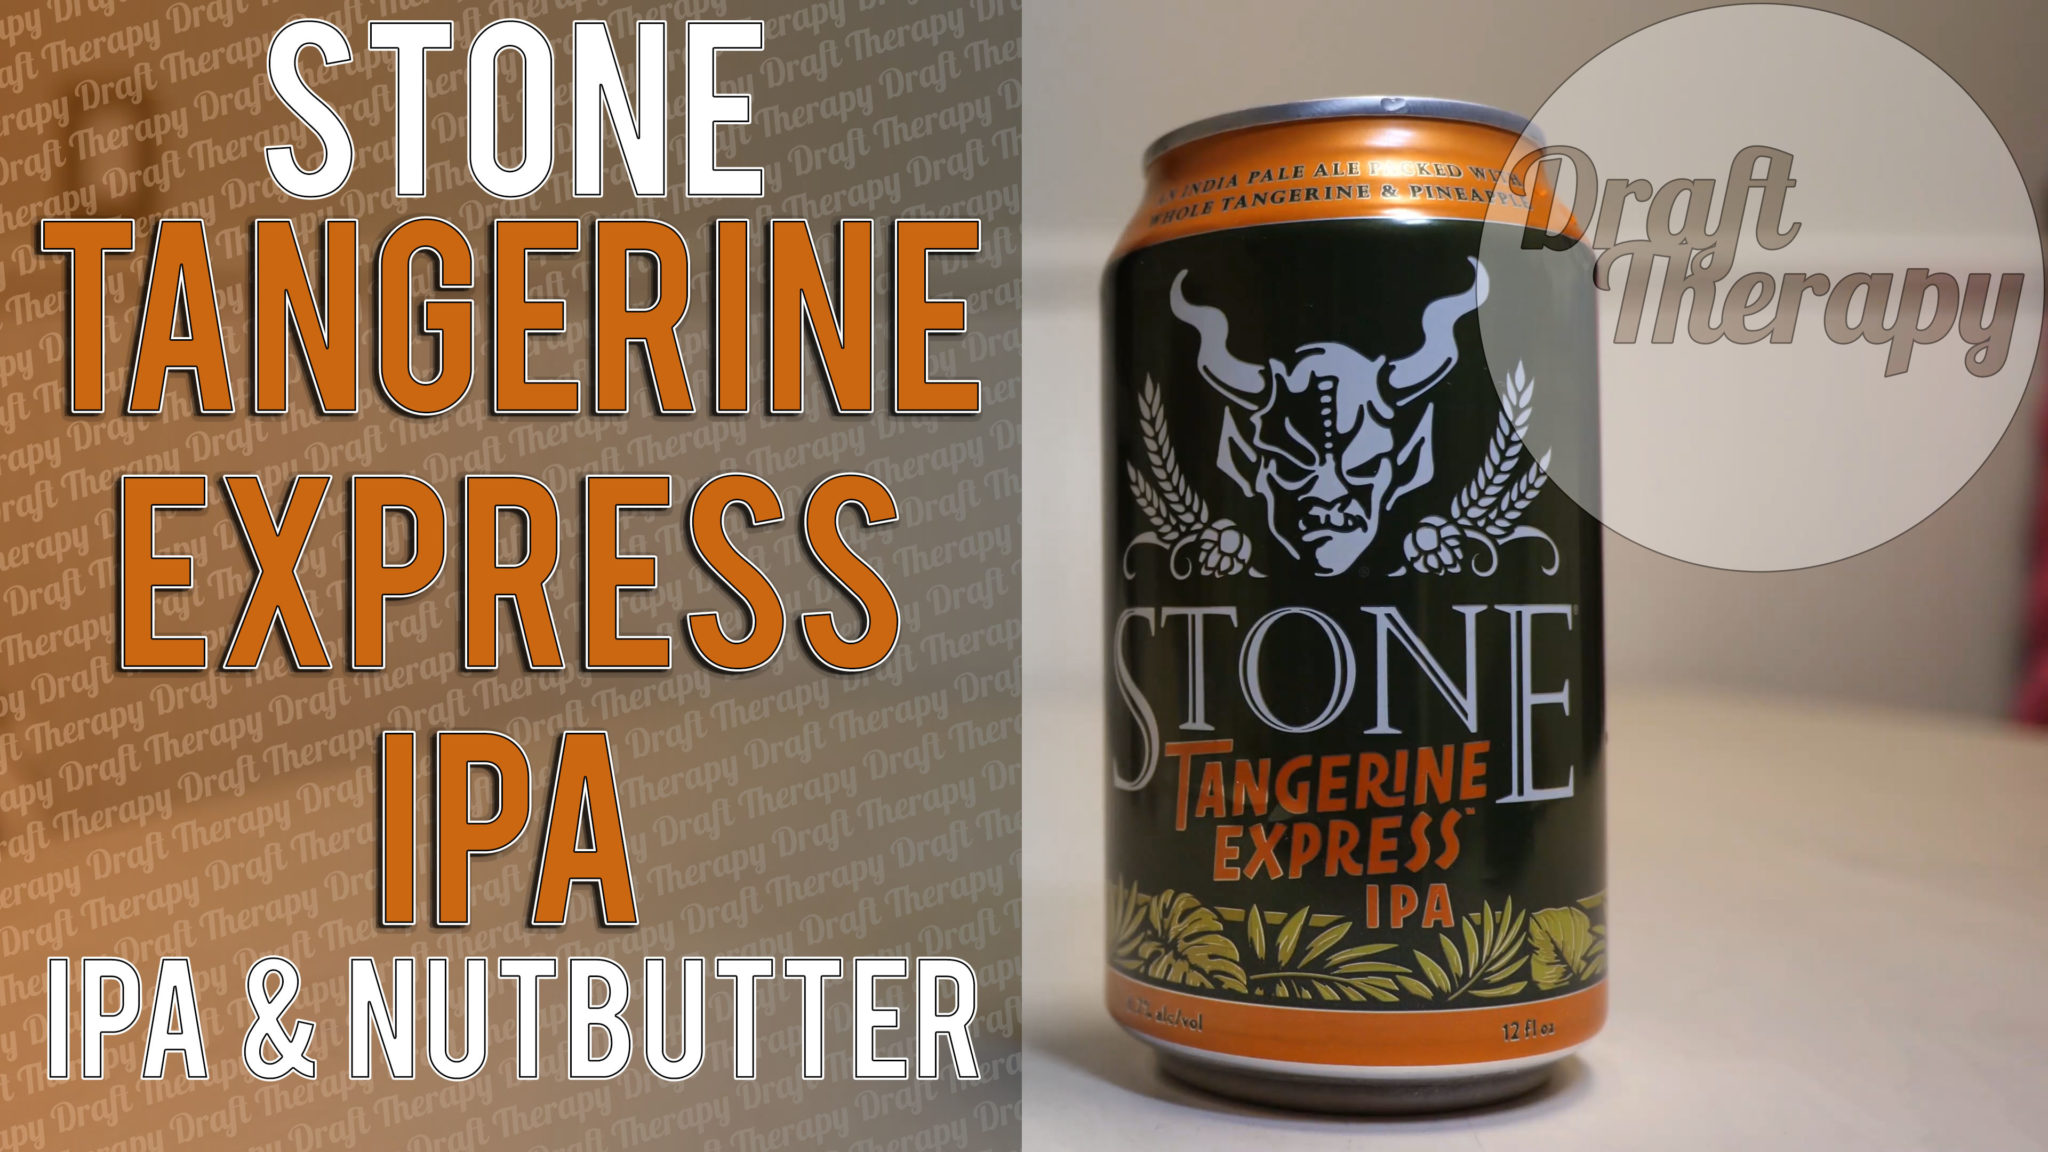 Stone Brewing and Nutista – Tangerine Express IPA & Nutbutter Review